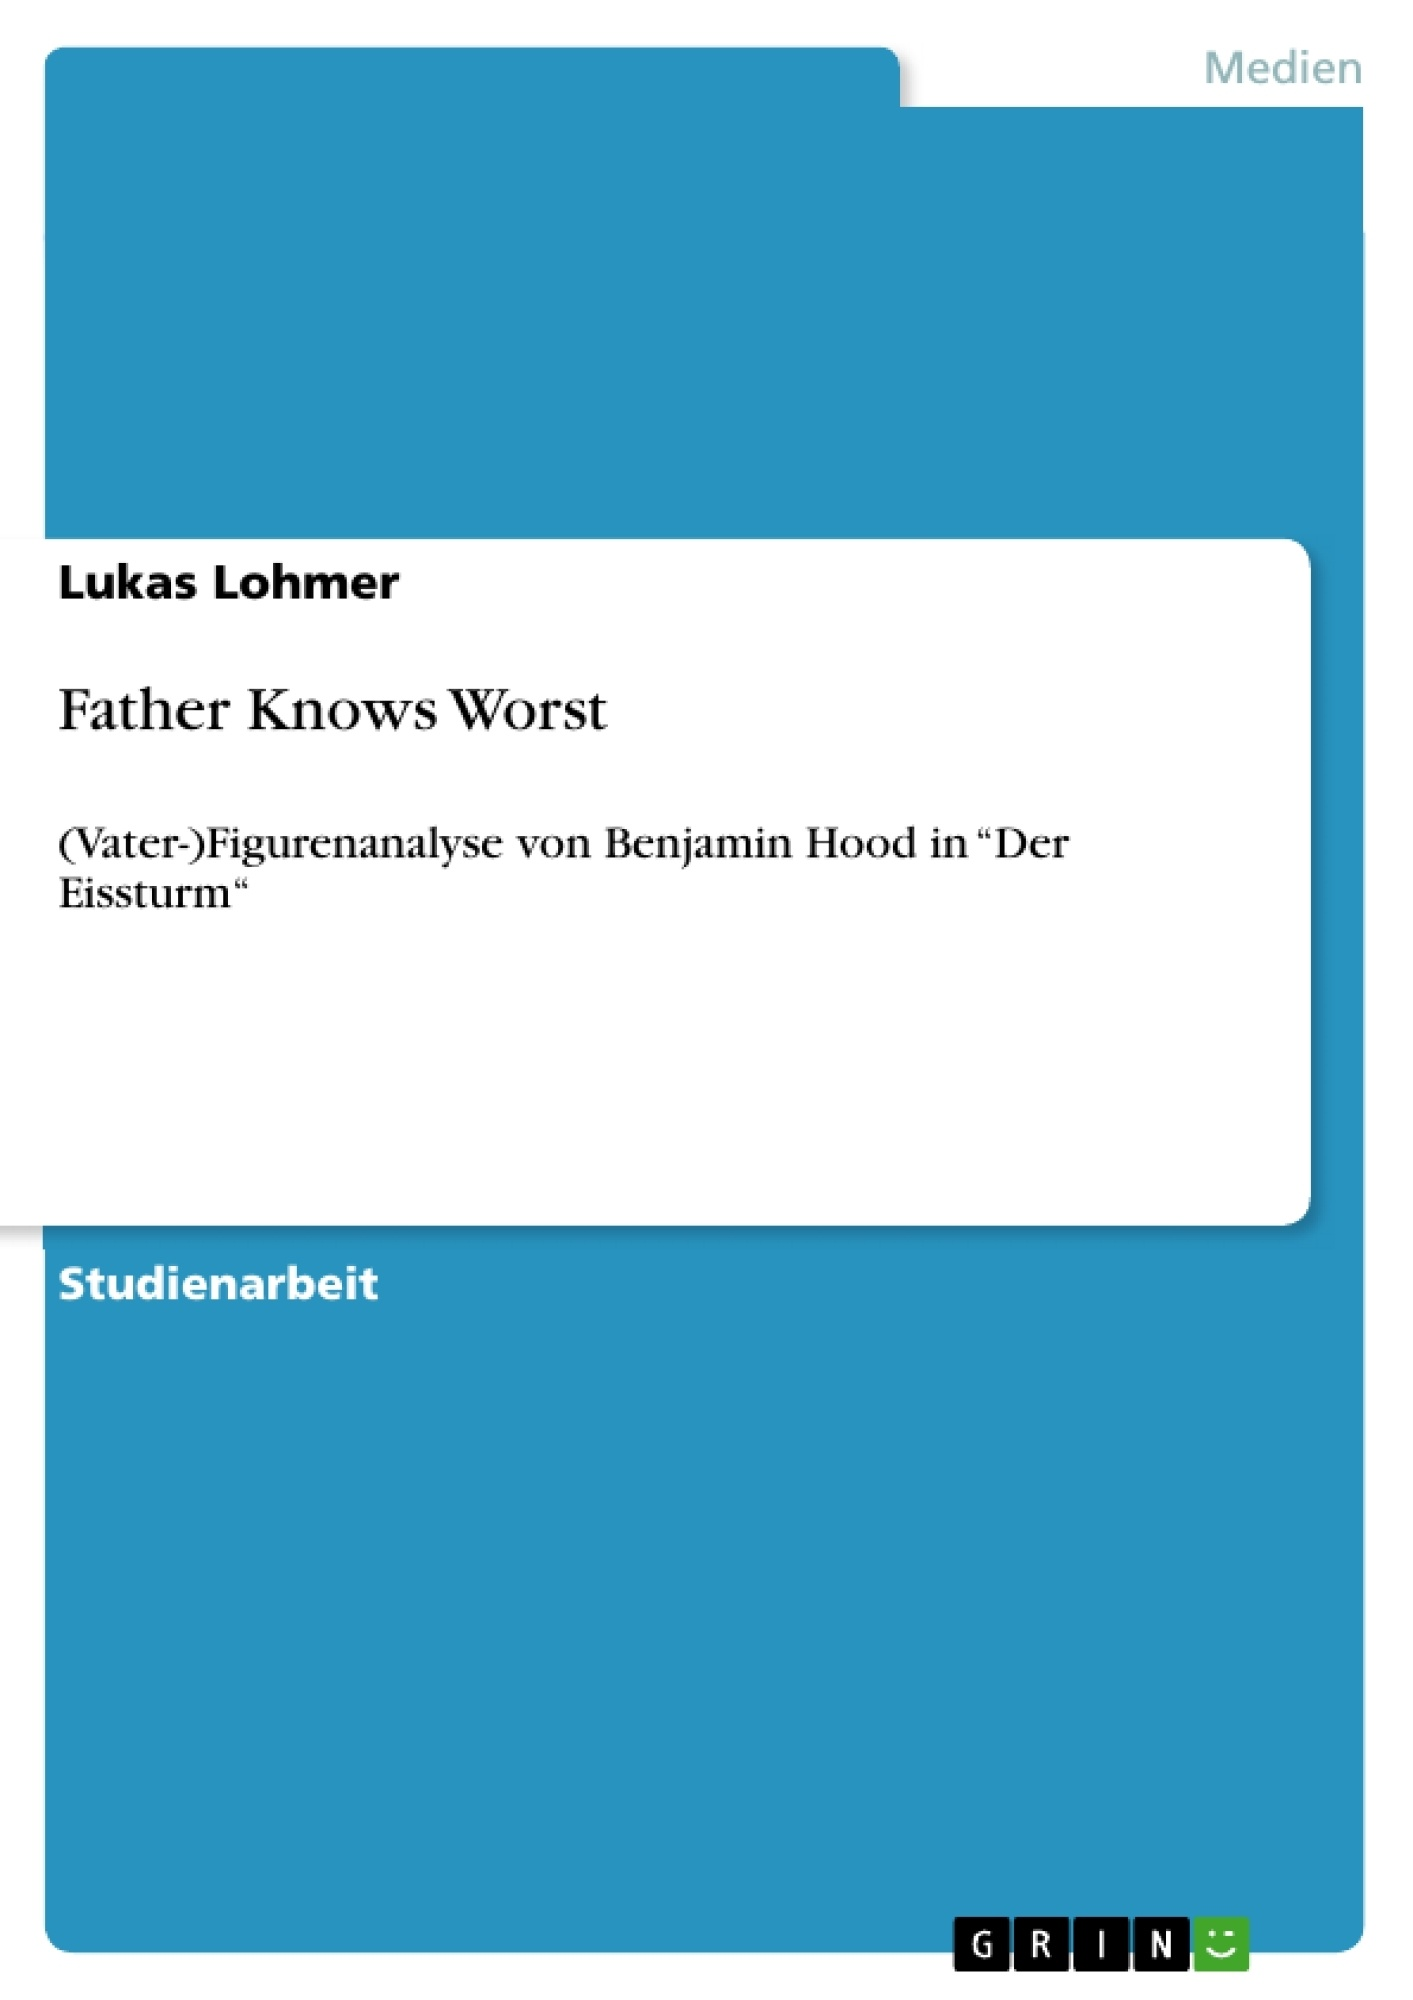 Titel: Father Knows Worst